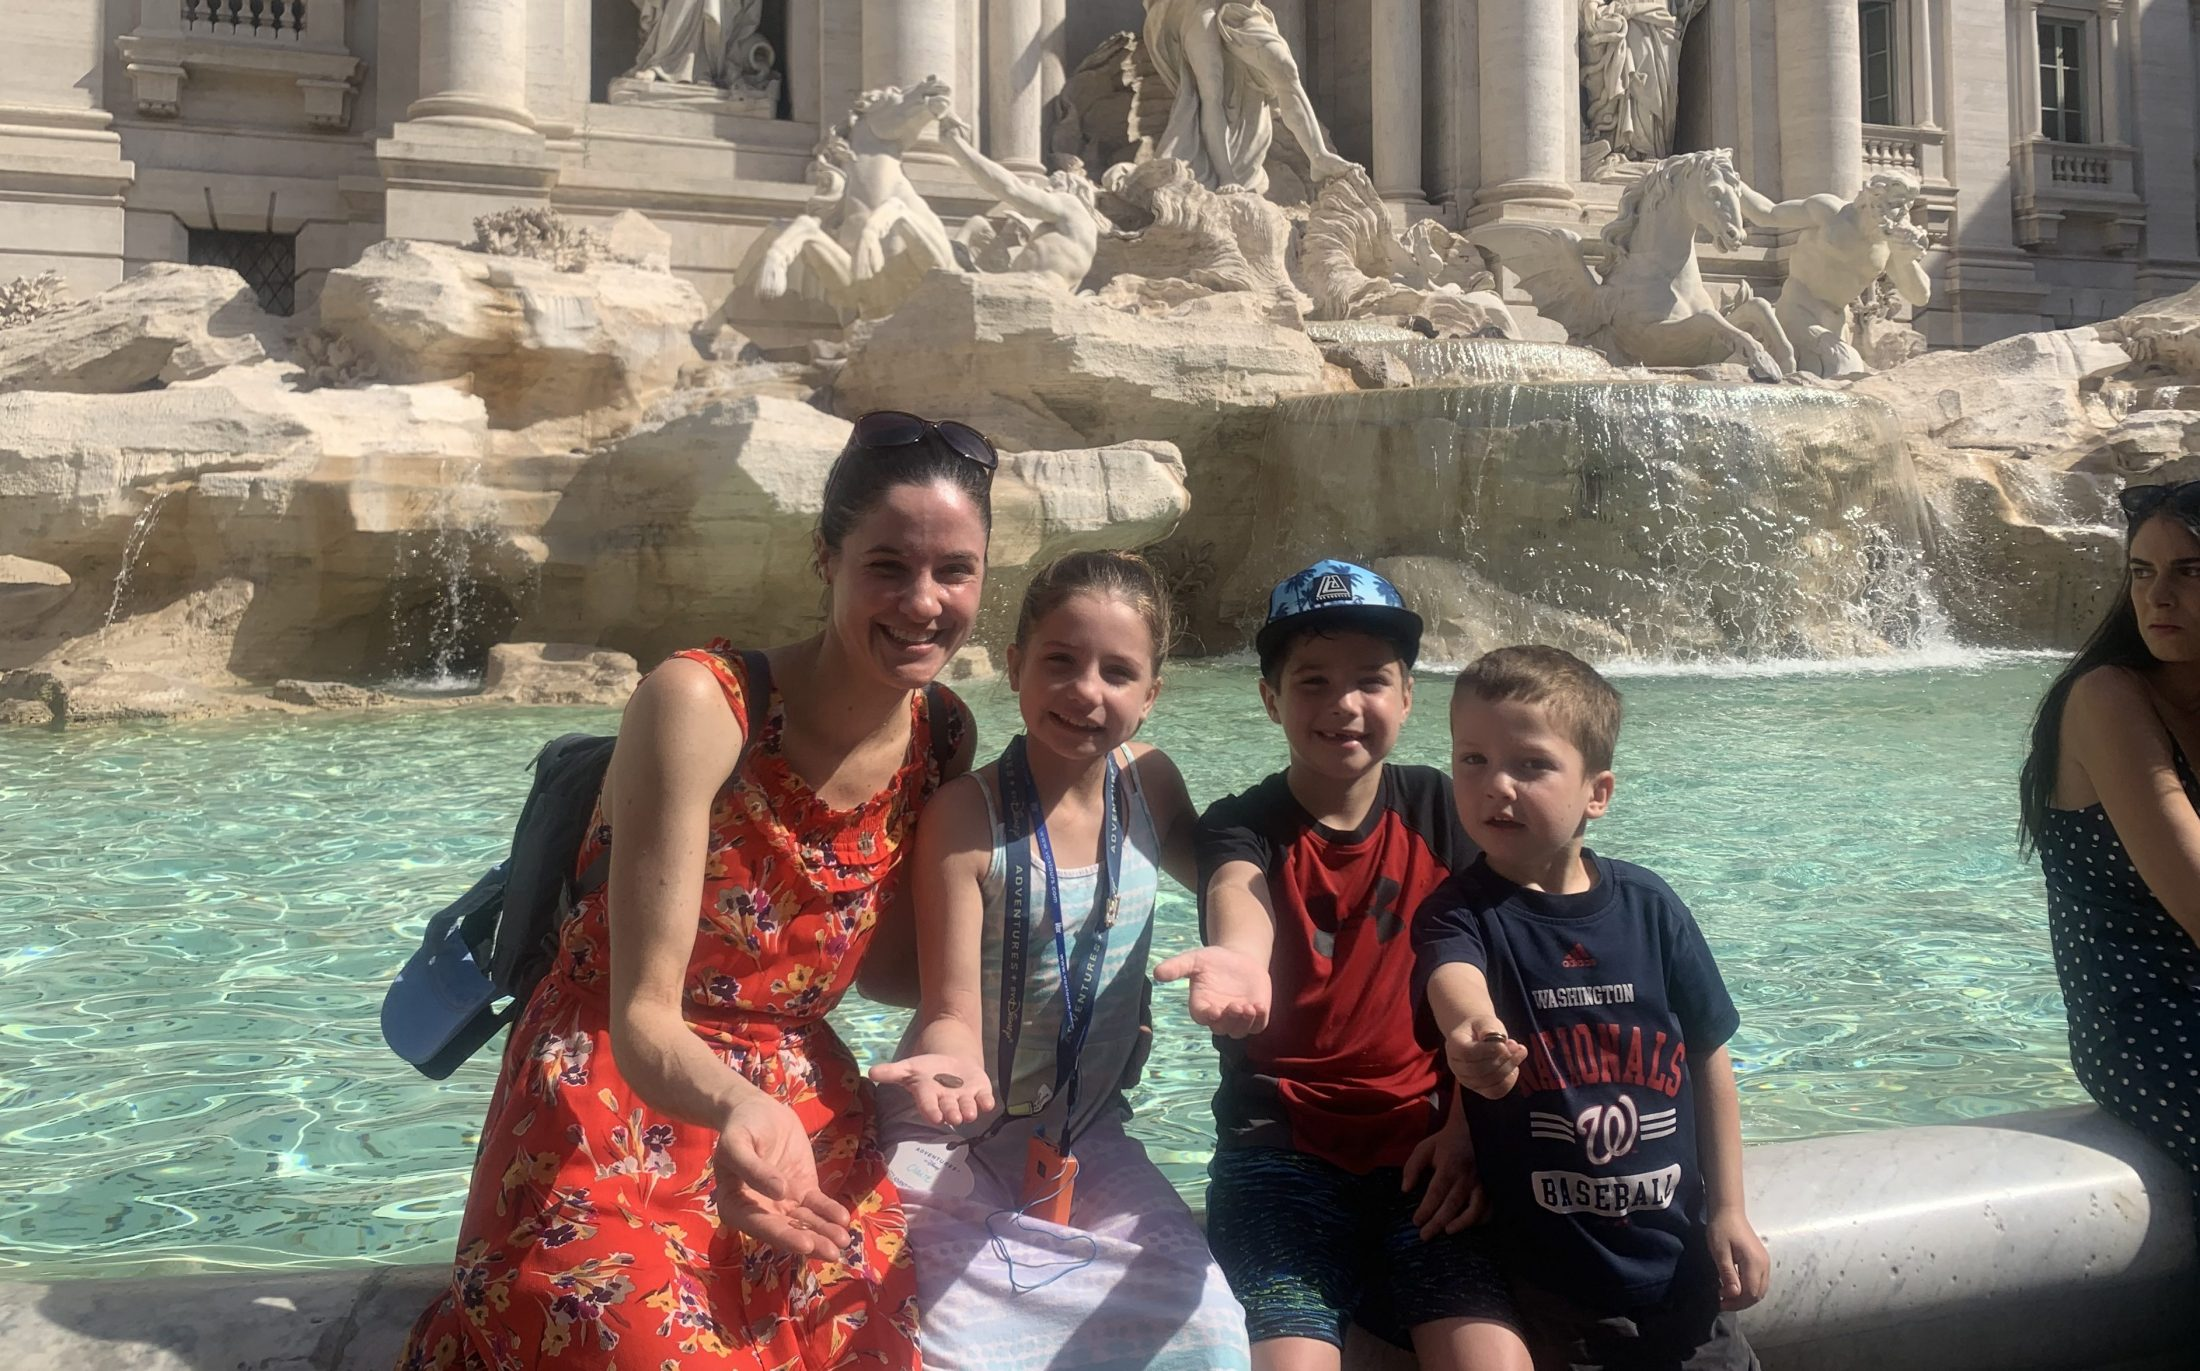 DC widow blog writer Marjorie Brimley and her three children in front of the Trevi fountain in Rome